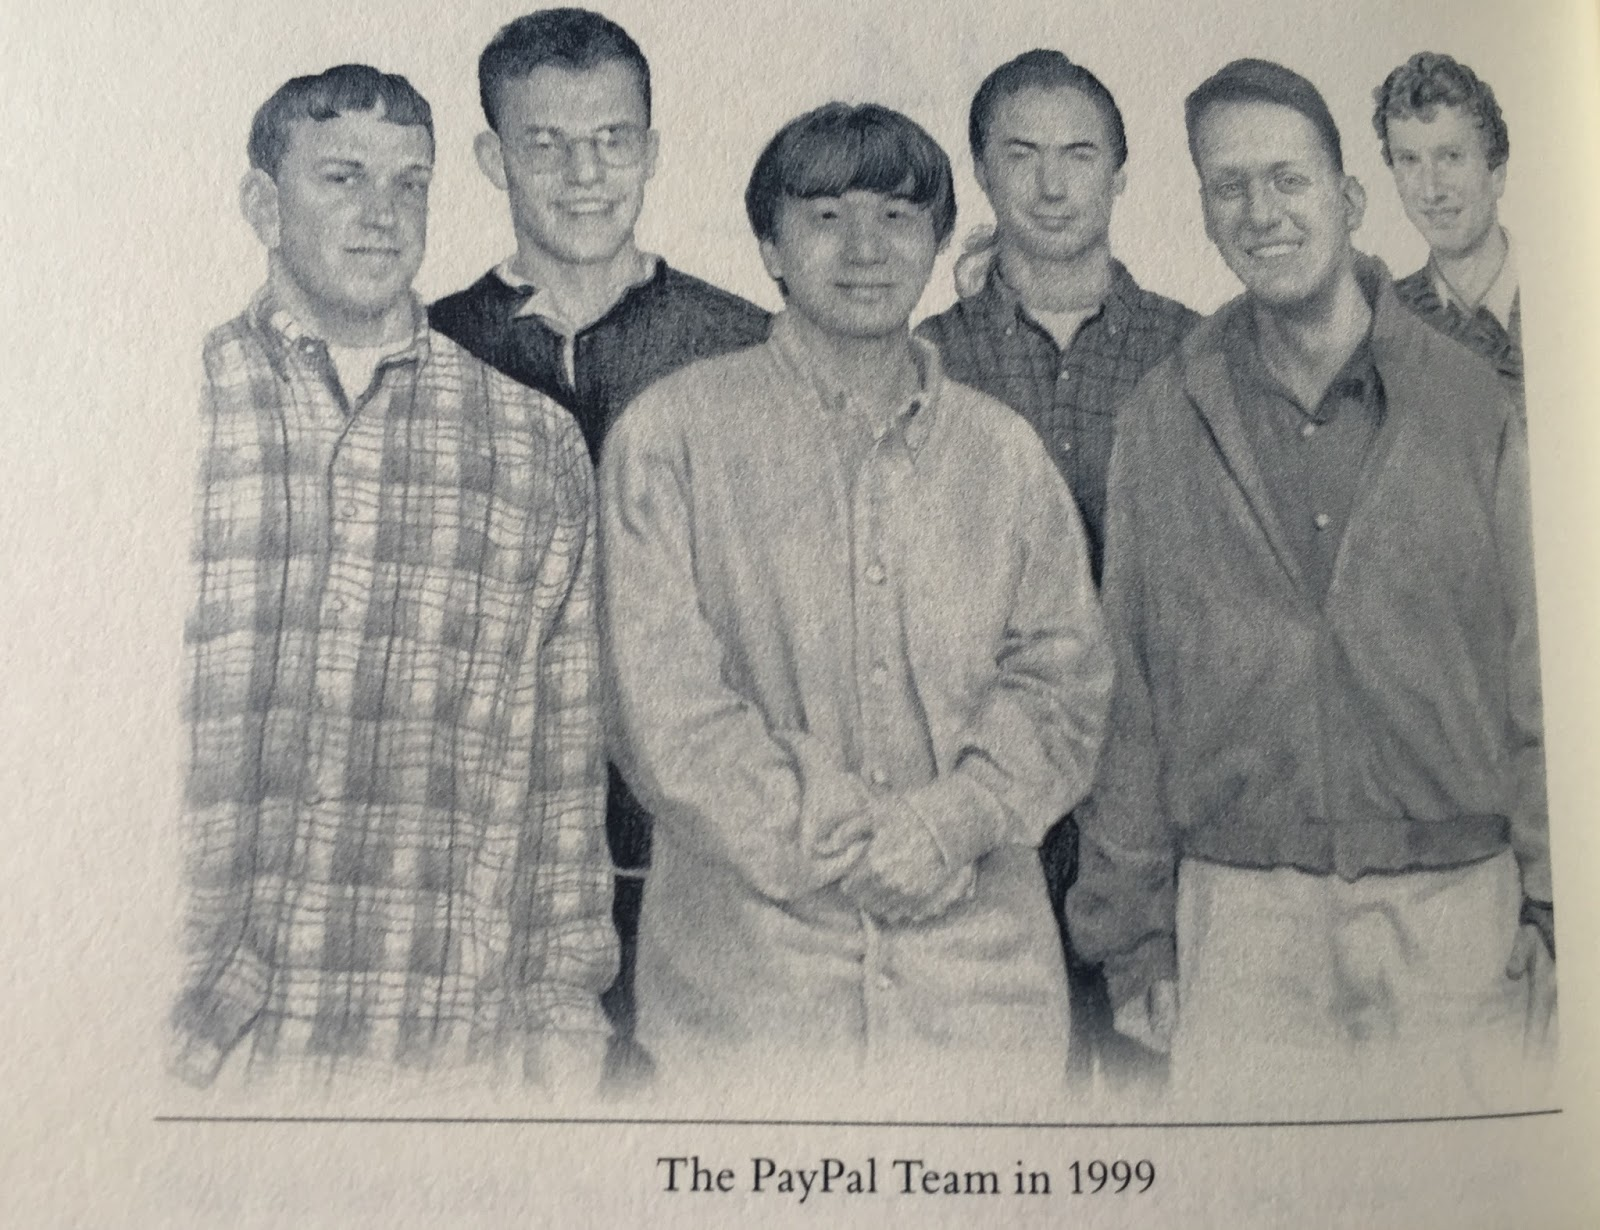 paypal team